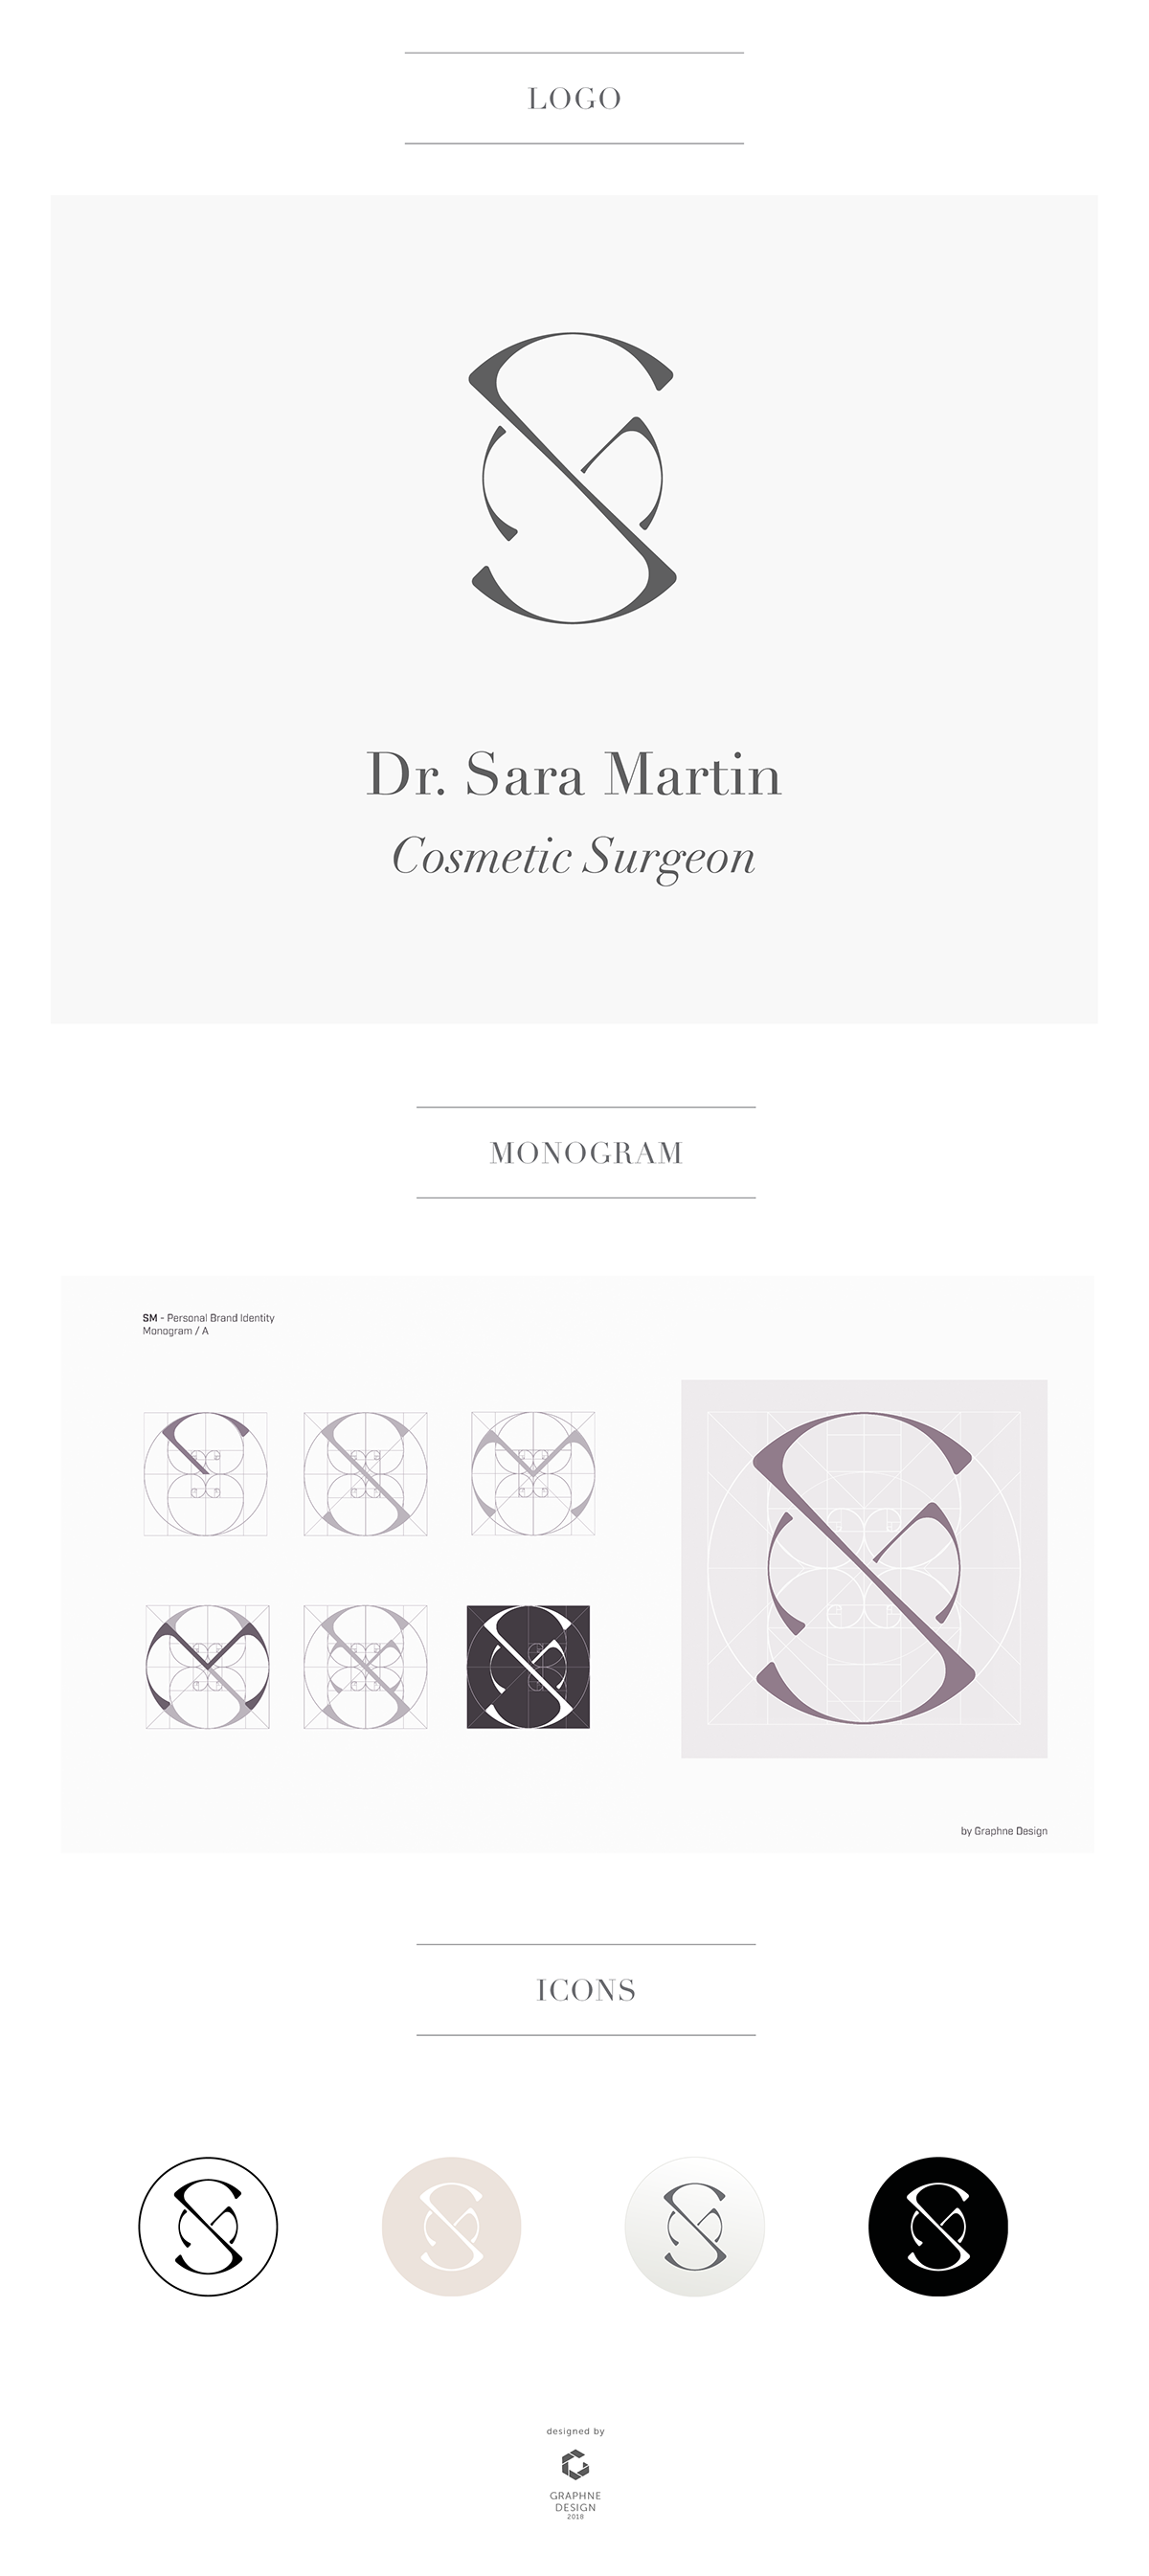 Sm Cosmetic Surgeon Personal Brand Identity On Behance